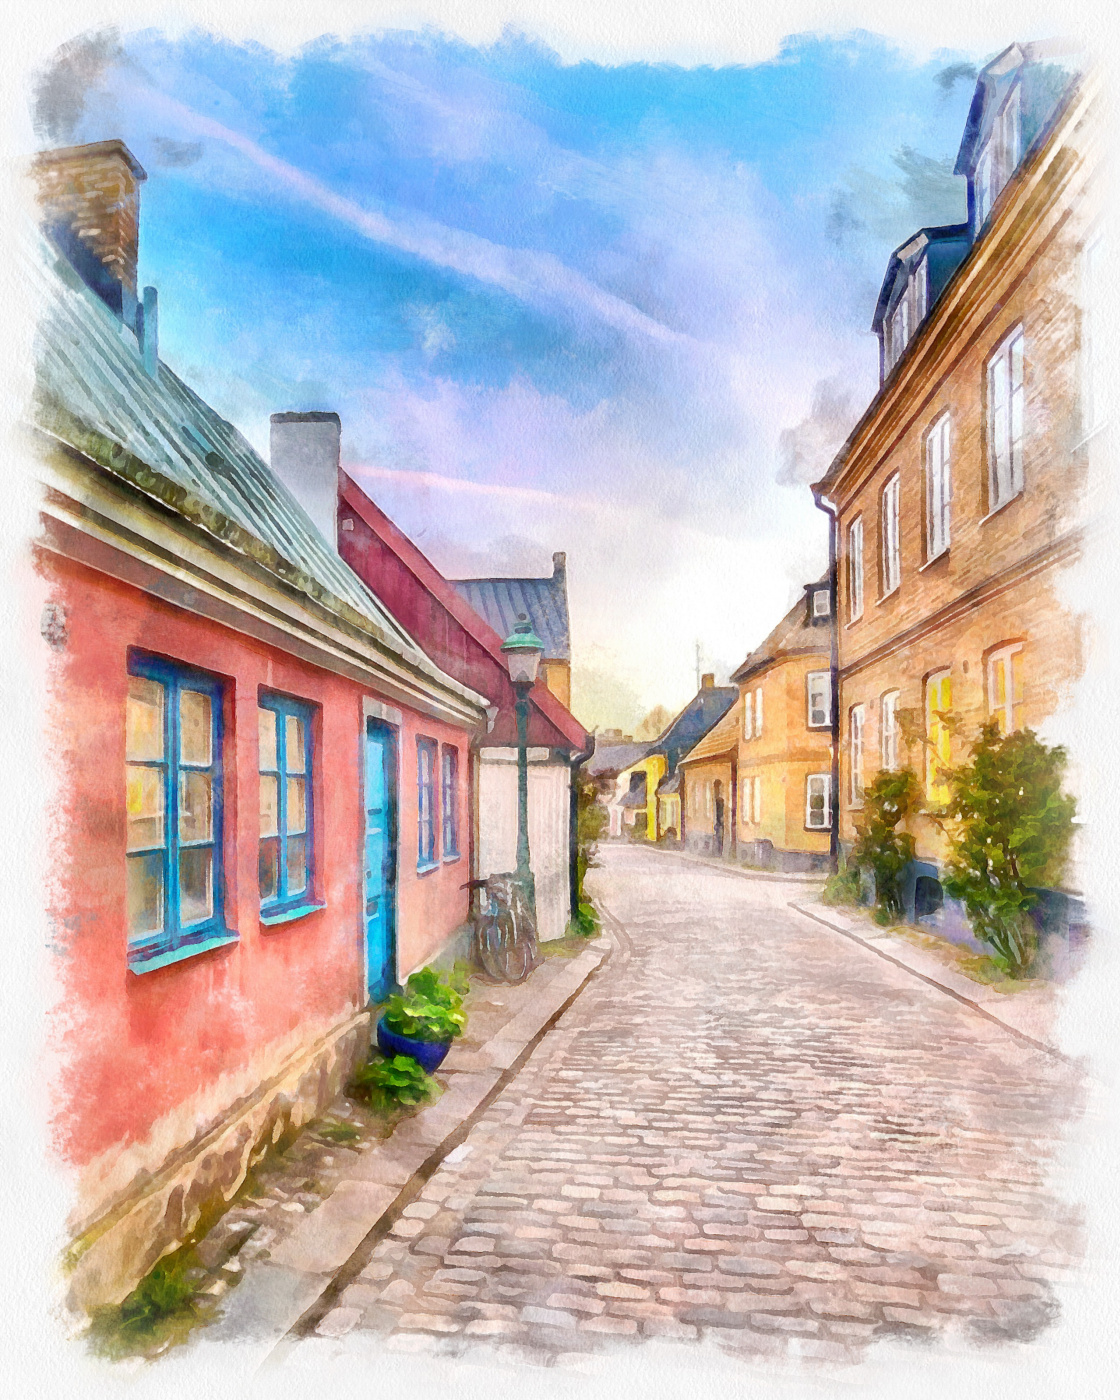 Melrom. Street in the city of Lund.